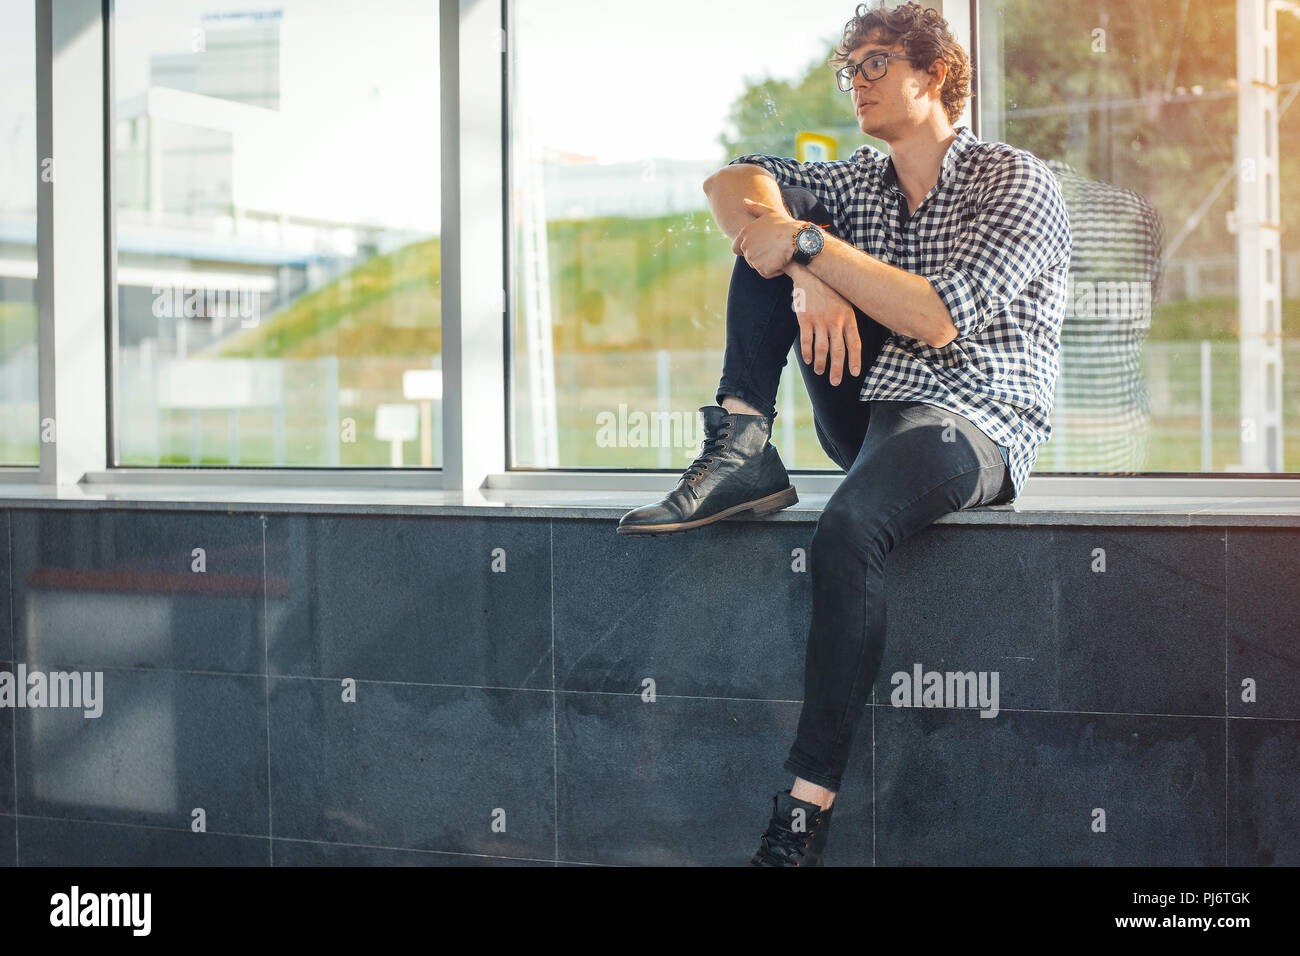 Distant plan of young man sitting next to big windows at metro station. - Stock Image